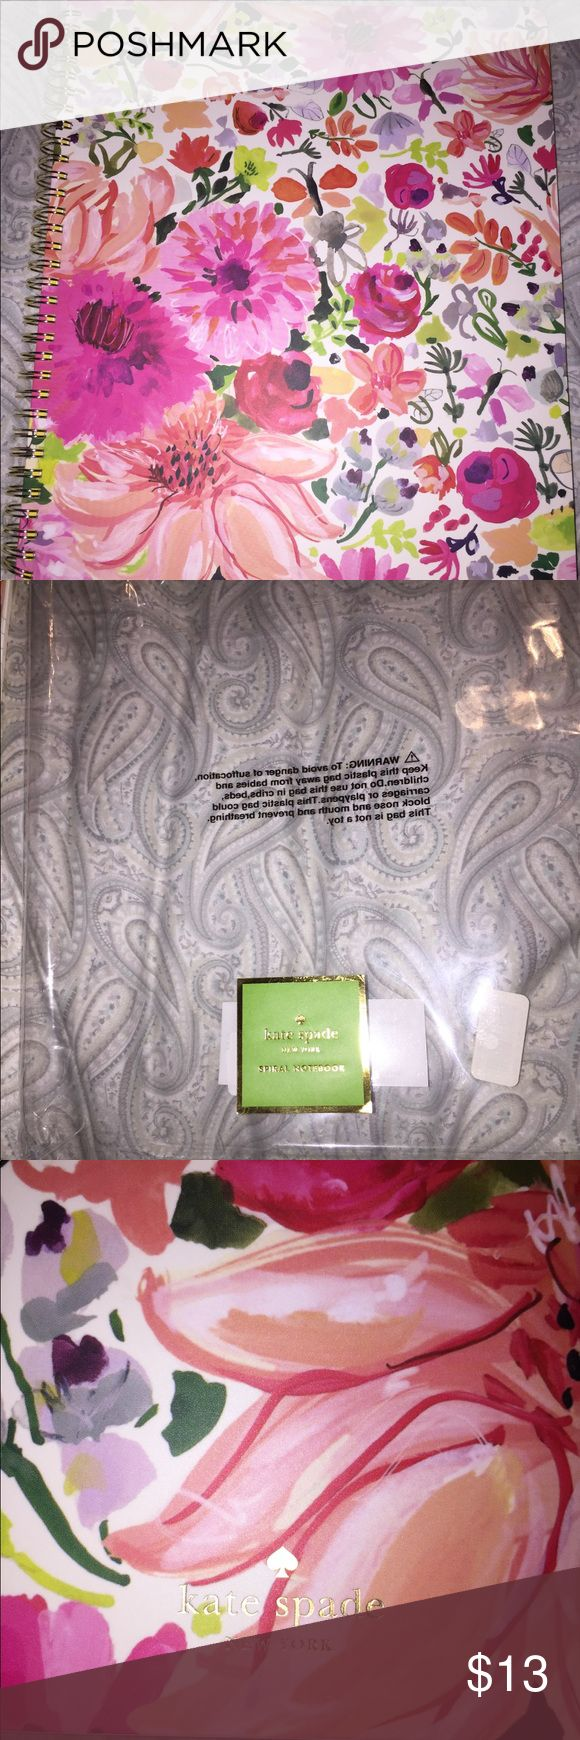 Kate Spade notebook Authentic Kate Spade spiral notebook brand new college rule with inside folder pocket. kate spade Other